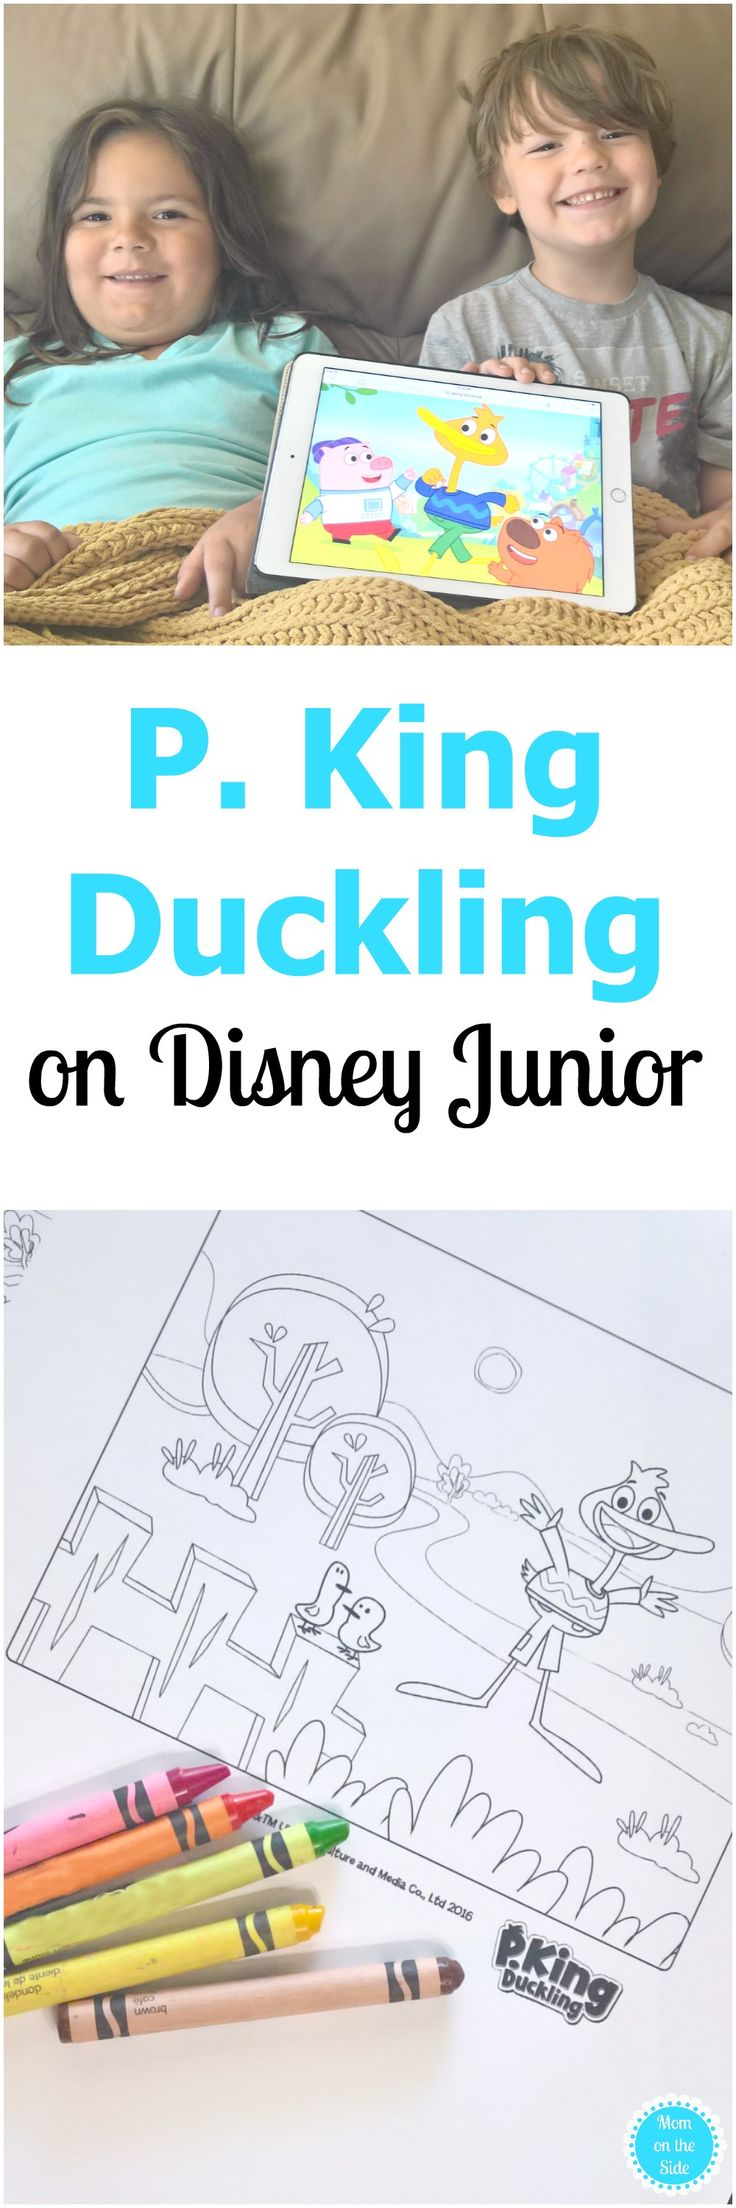 P. King Duckling, Wombat, and Chumpkins are three best friend's on Disney Junior's newest show. Learn more and the Core Values of P. King Duckling. via @momontheside AD pkingducklingdisneyjunior